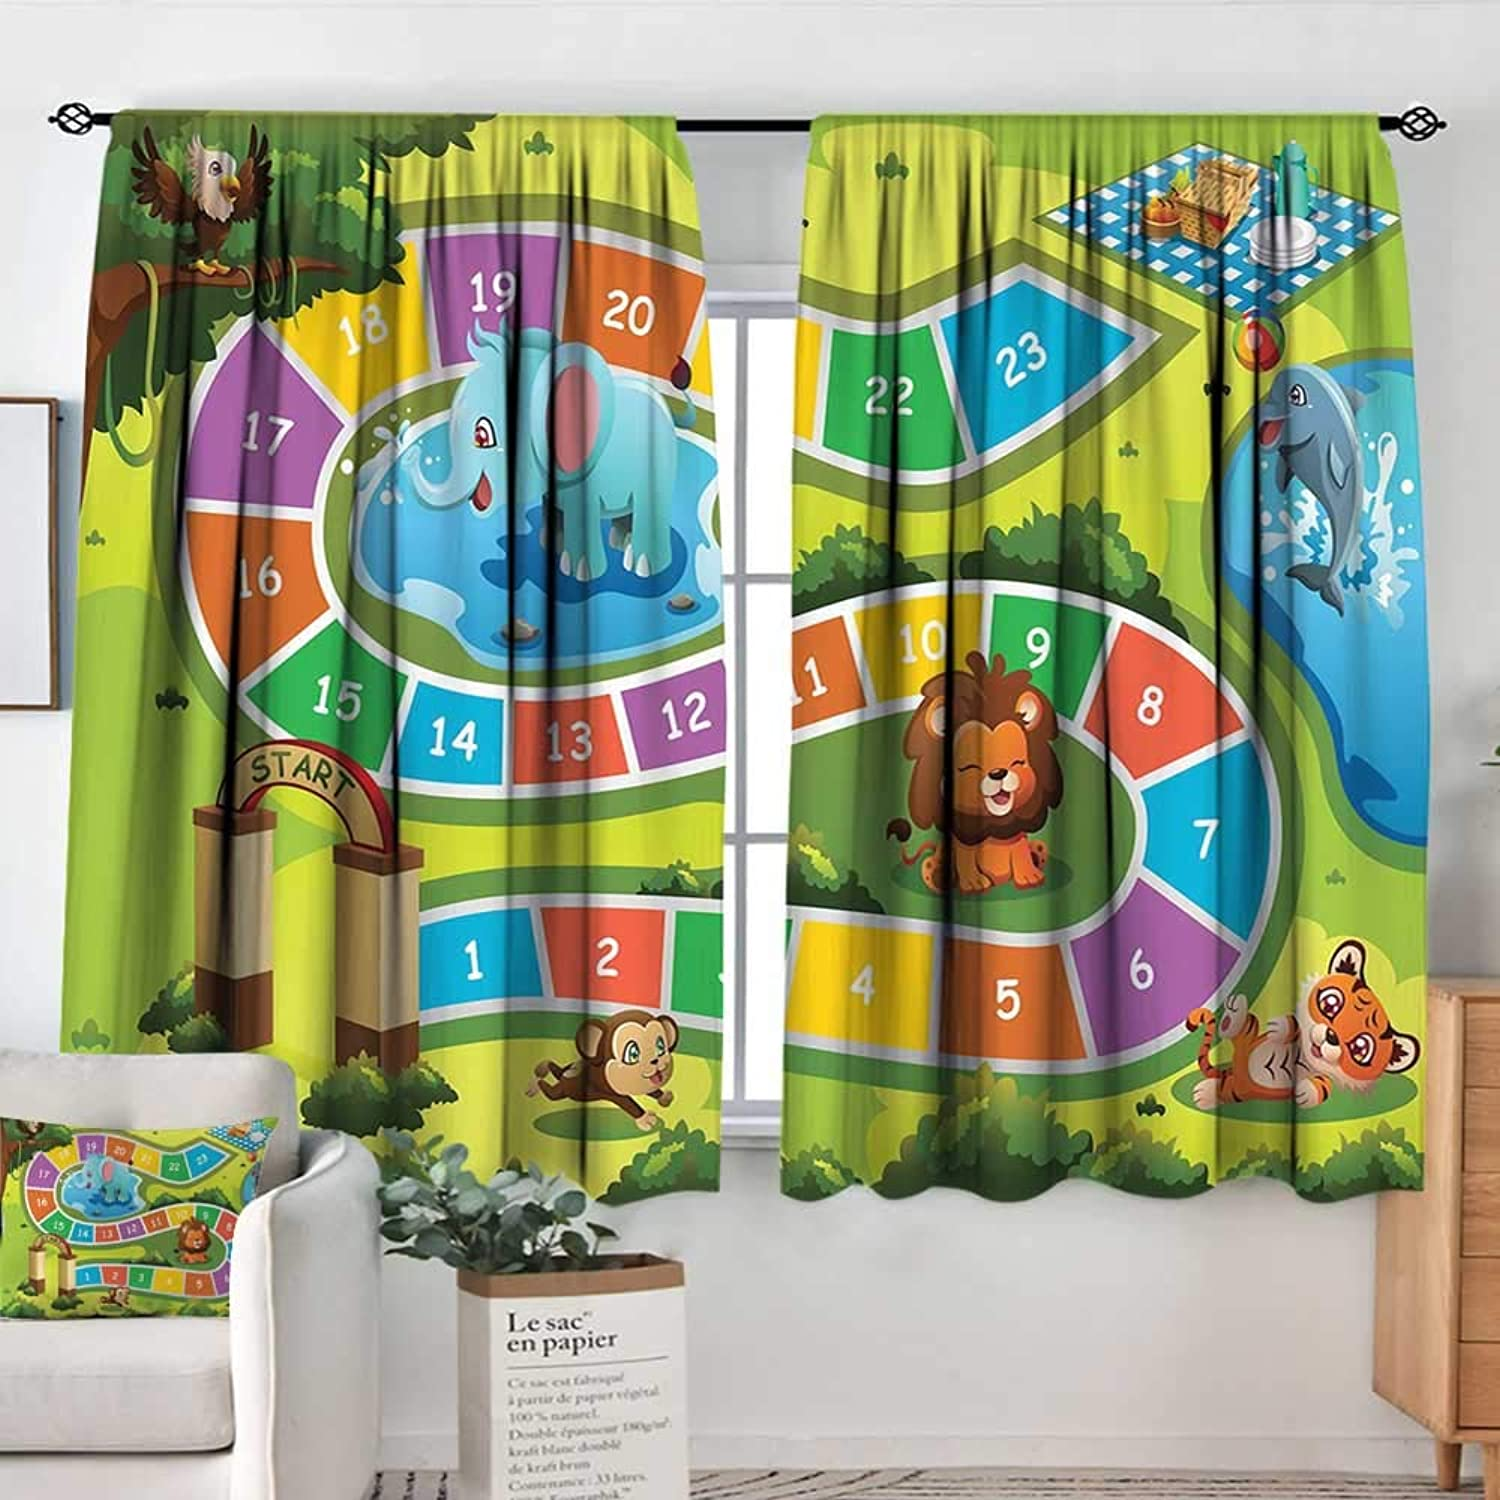 Elliot Dgoldthy Rod Pocket Curtains Kids Activity,Picnic in The Forrest colorful Pathway to The Blanket with Friendly Animals,Multicolor,for Room Darkening Panels for Living Room, Bedroom 42 x63